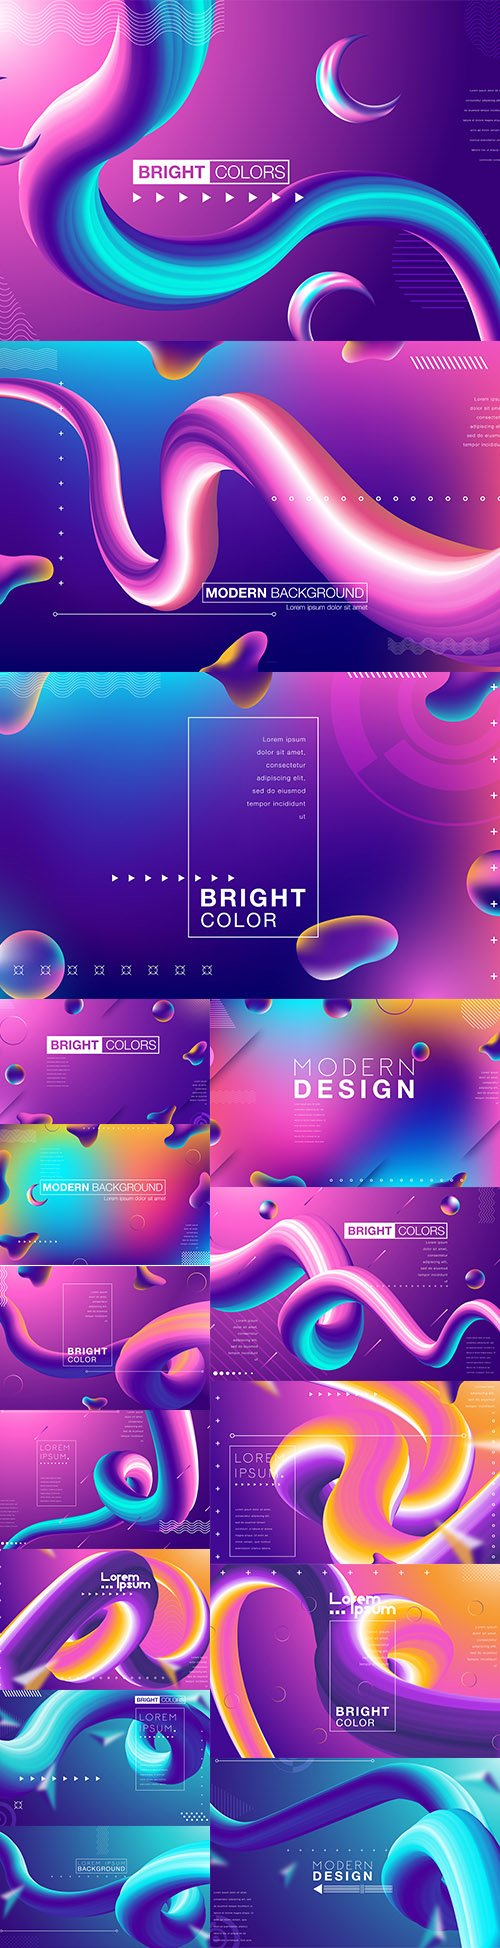 Abstract Gradient Illustrations